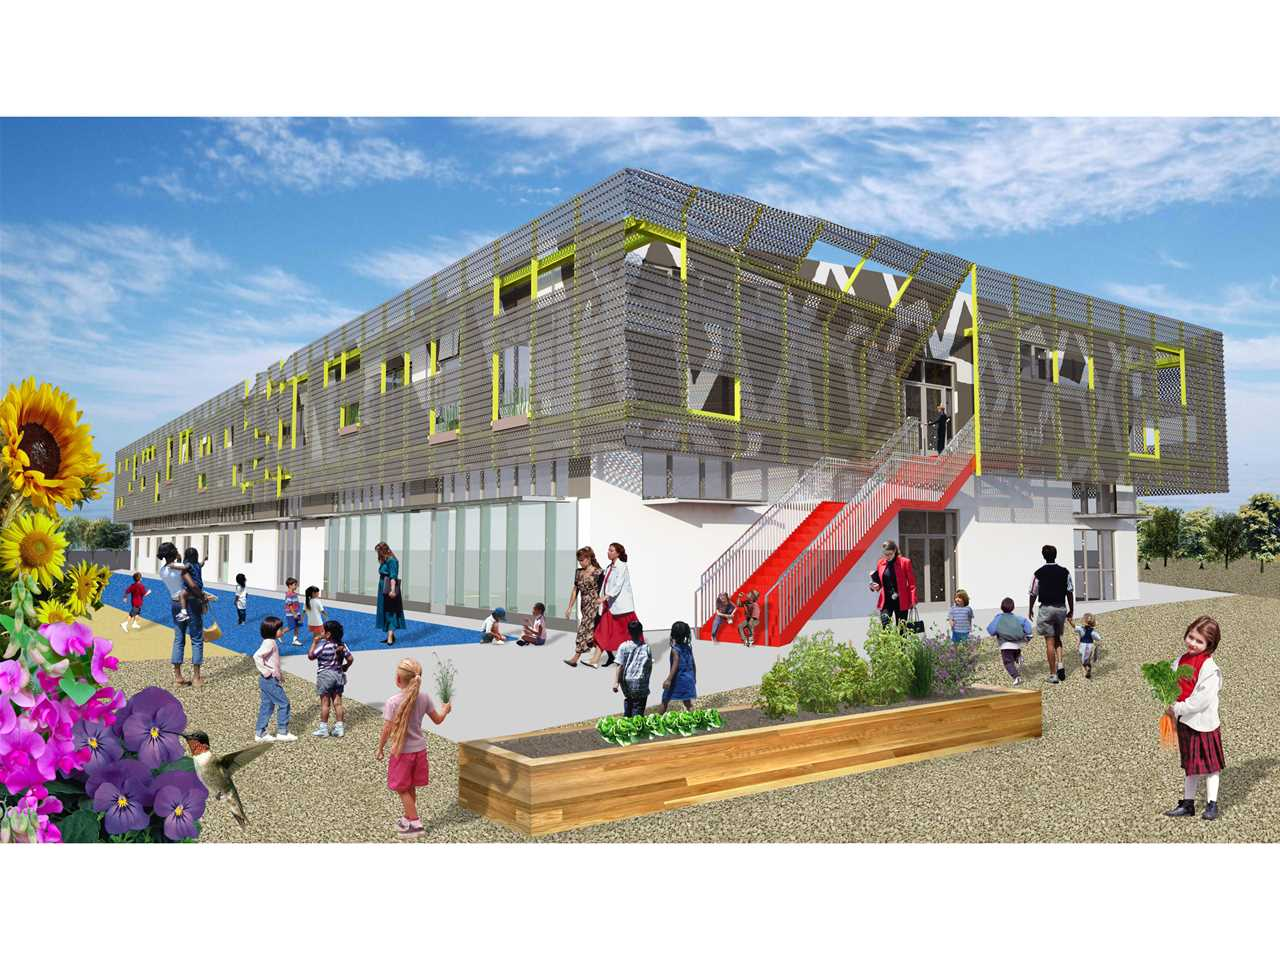 Holcim Awards Silver 2011 North America: Zero net energy school building, Los Angeles, CA, USA